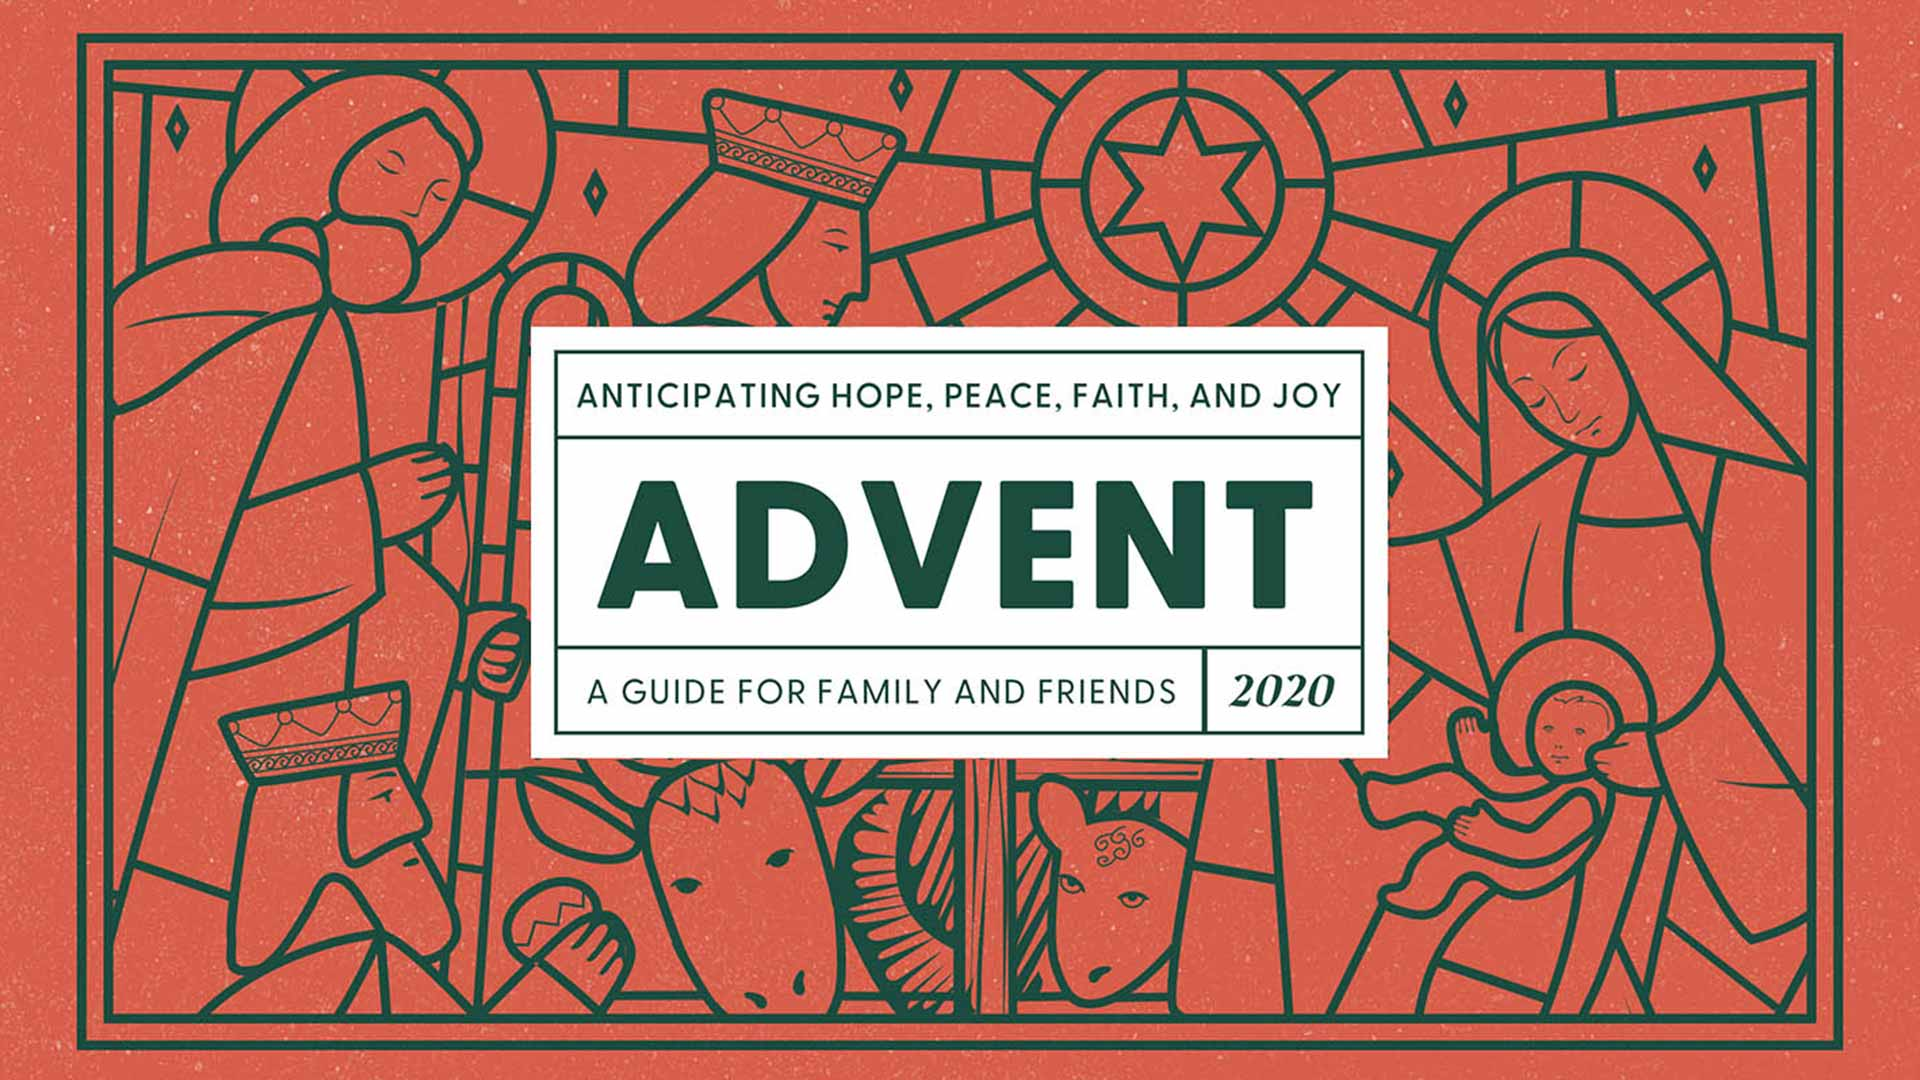 November 29-December 25